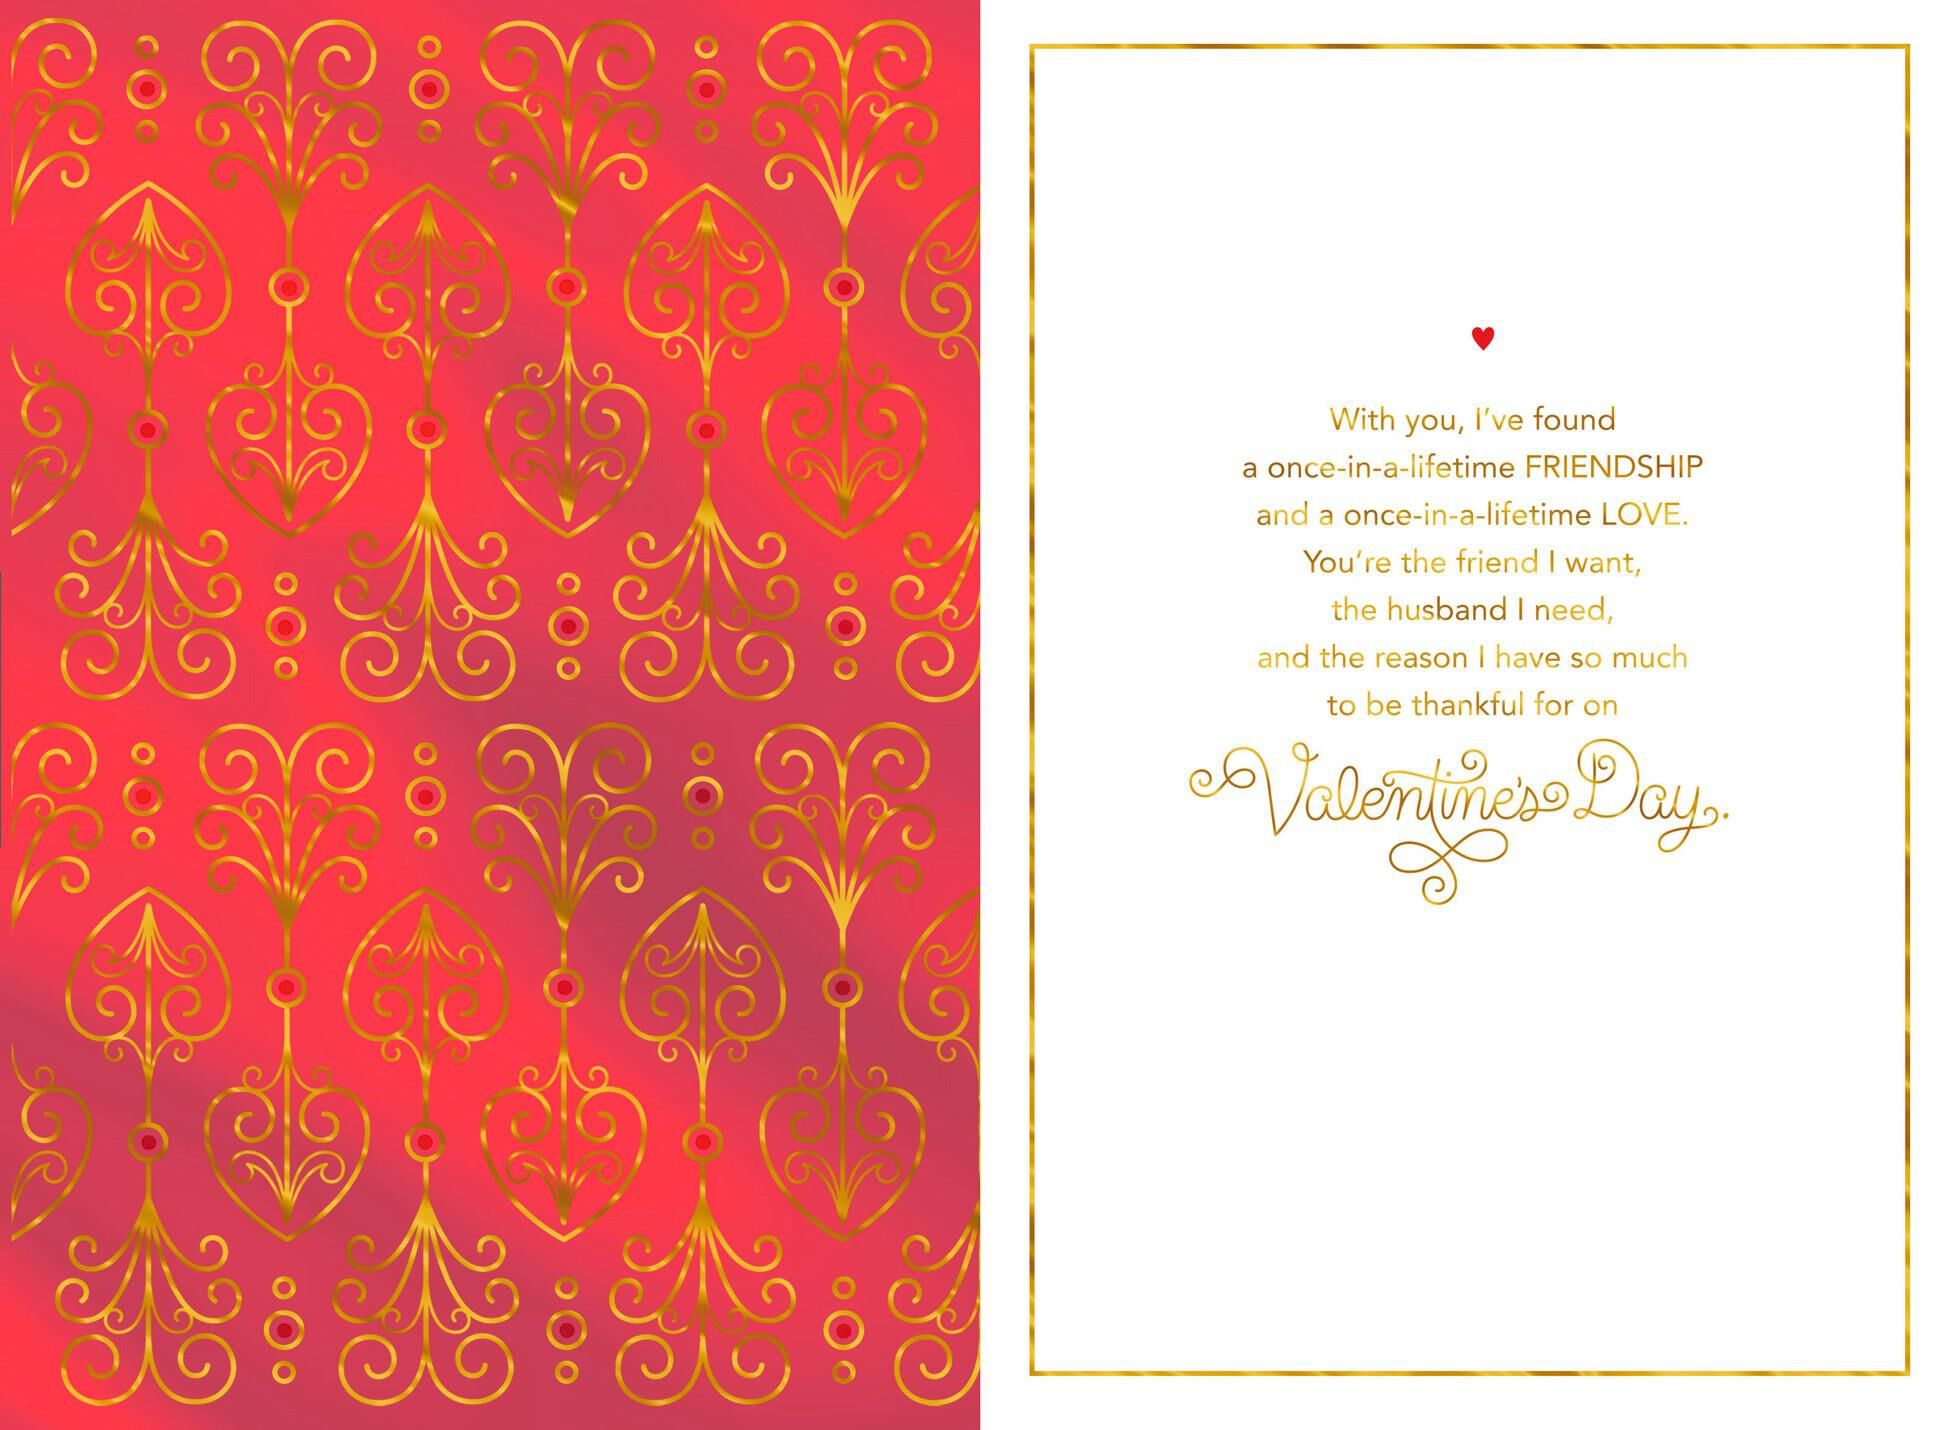 Gold Foil Scrollwork Valentineu0027s Day Card For Husband,